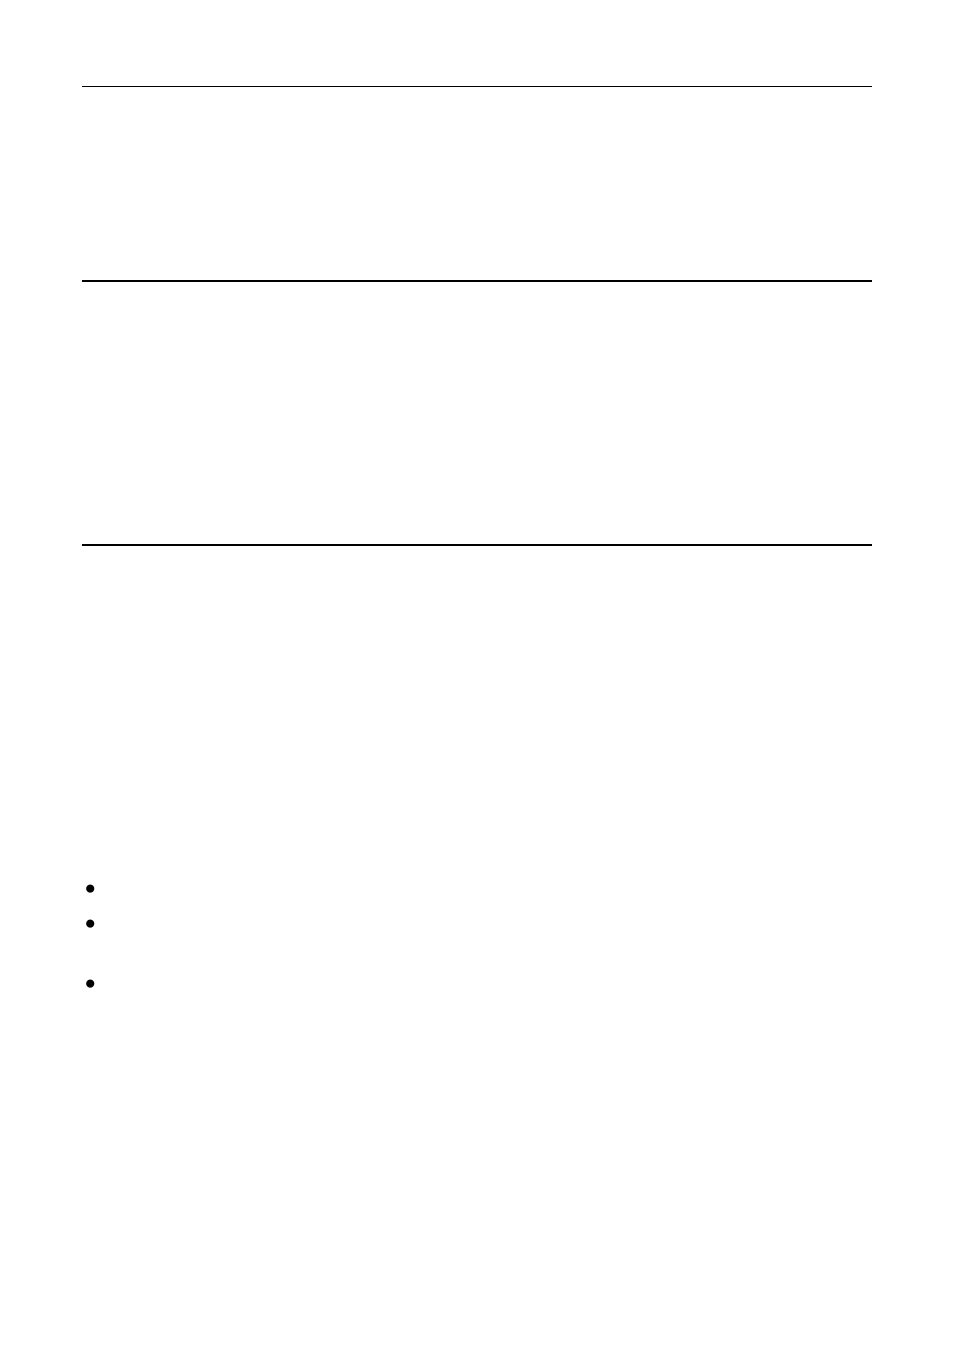 Telemetry monitor software, Connecting the adl3 to a pc, 14